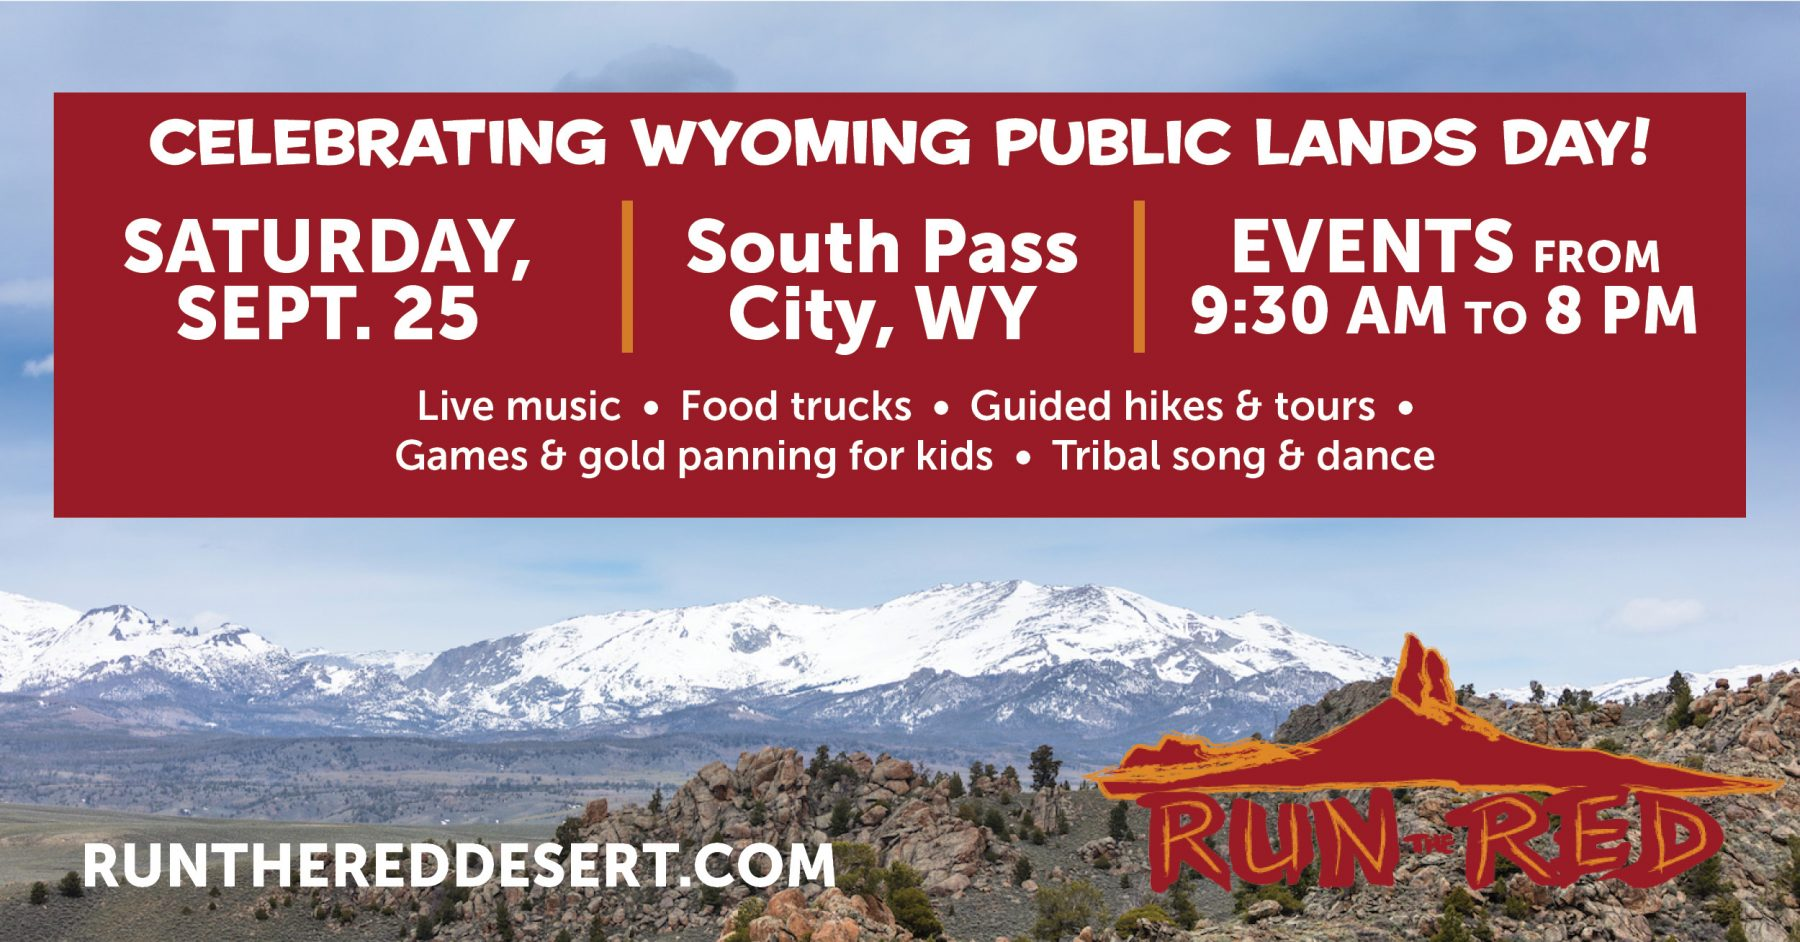 Run the Red to Celebrate Wyoming Public Lands Day with Community Events in South Pass City